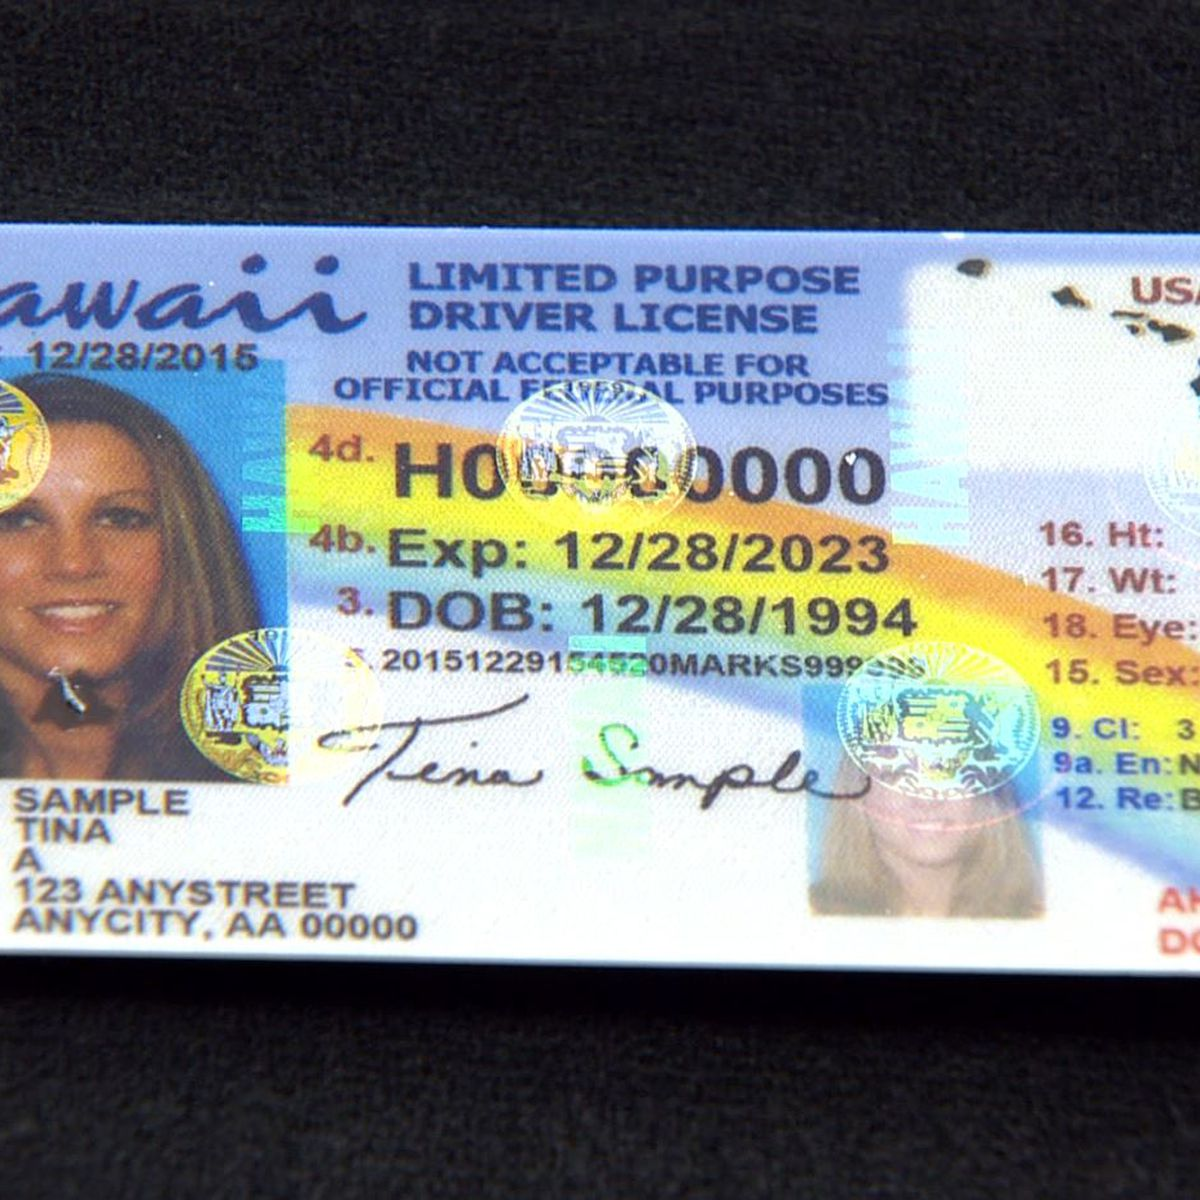 Gov. Ige to sign bill allowing 'Gender X' on Hawai'i driver licenses